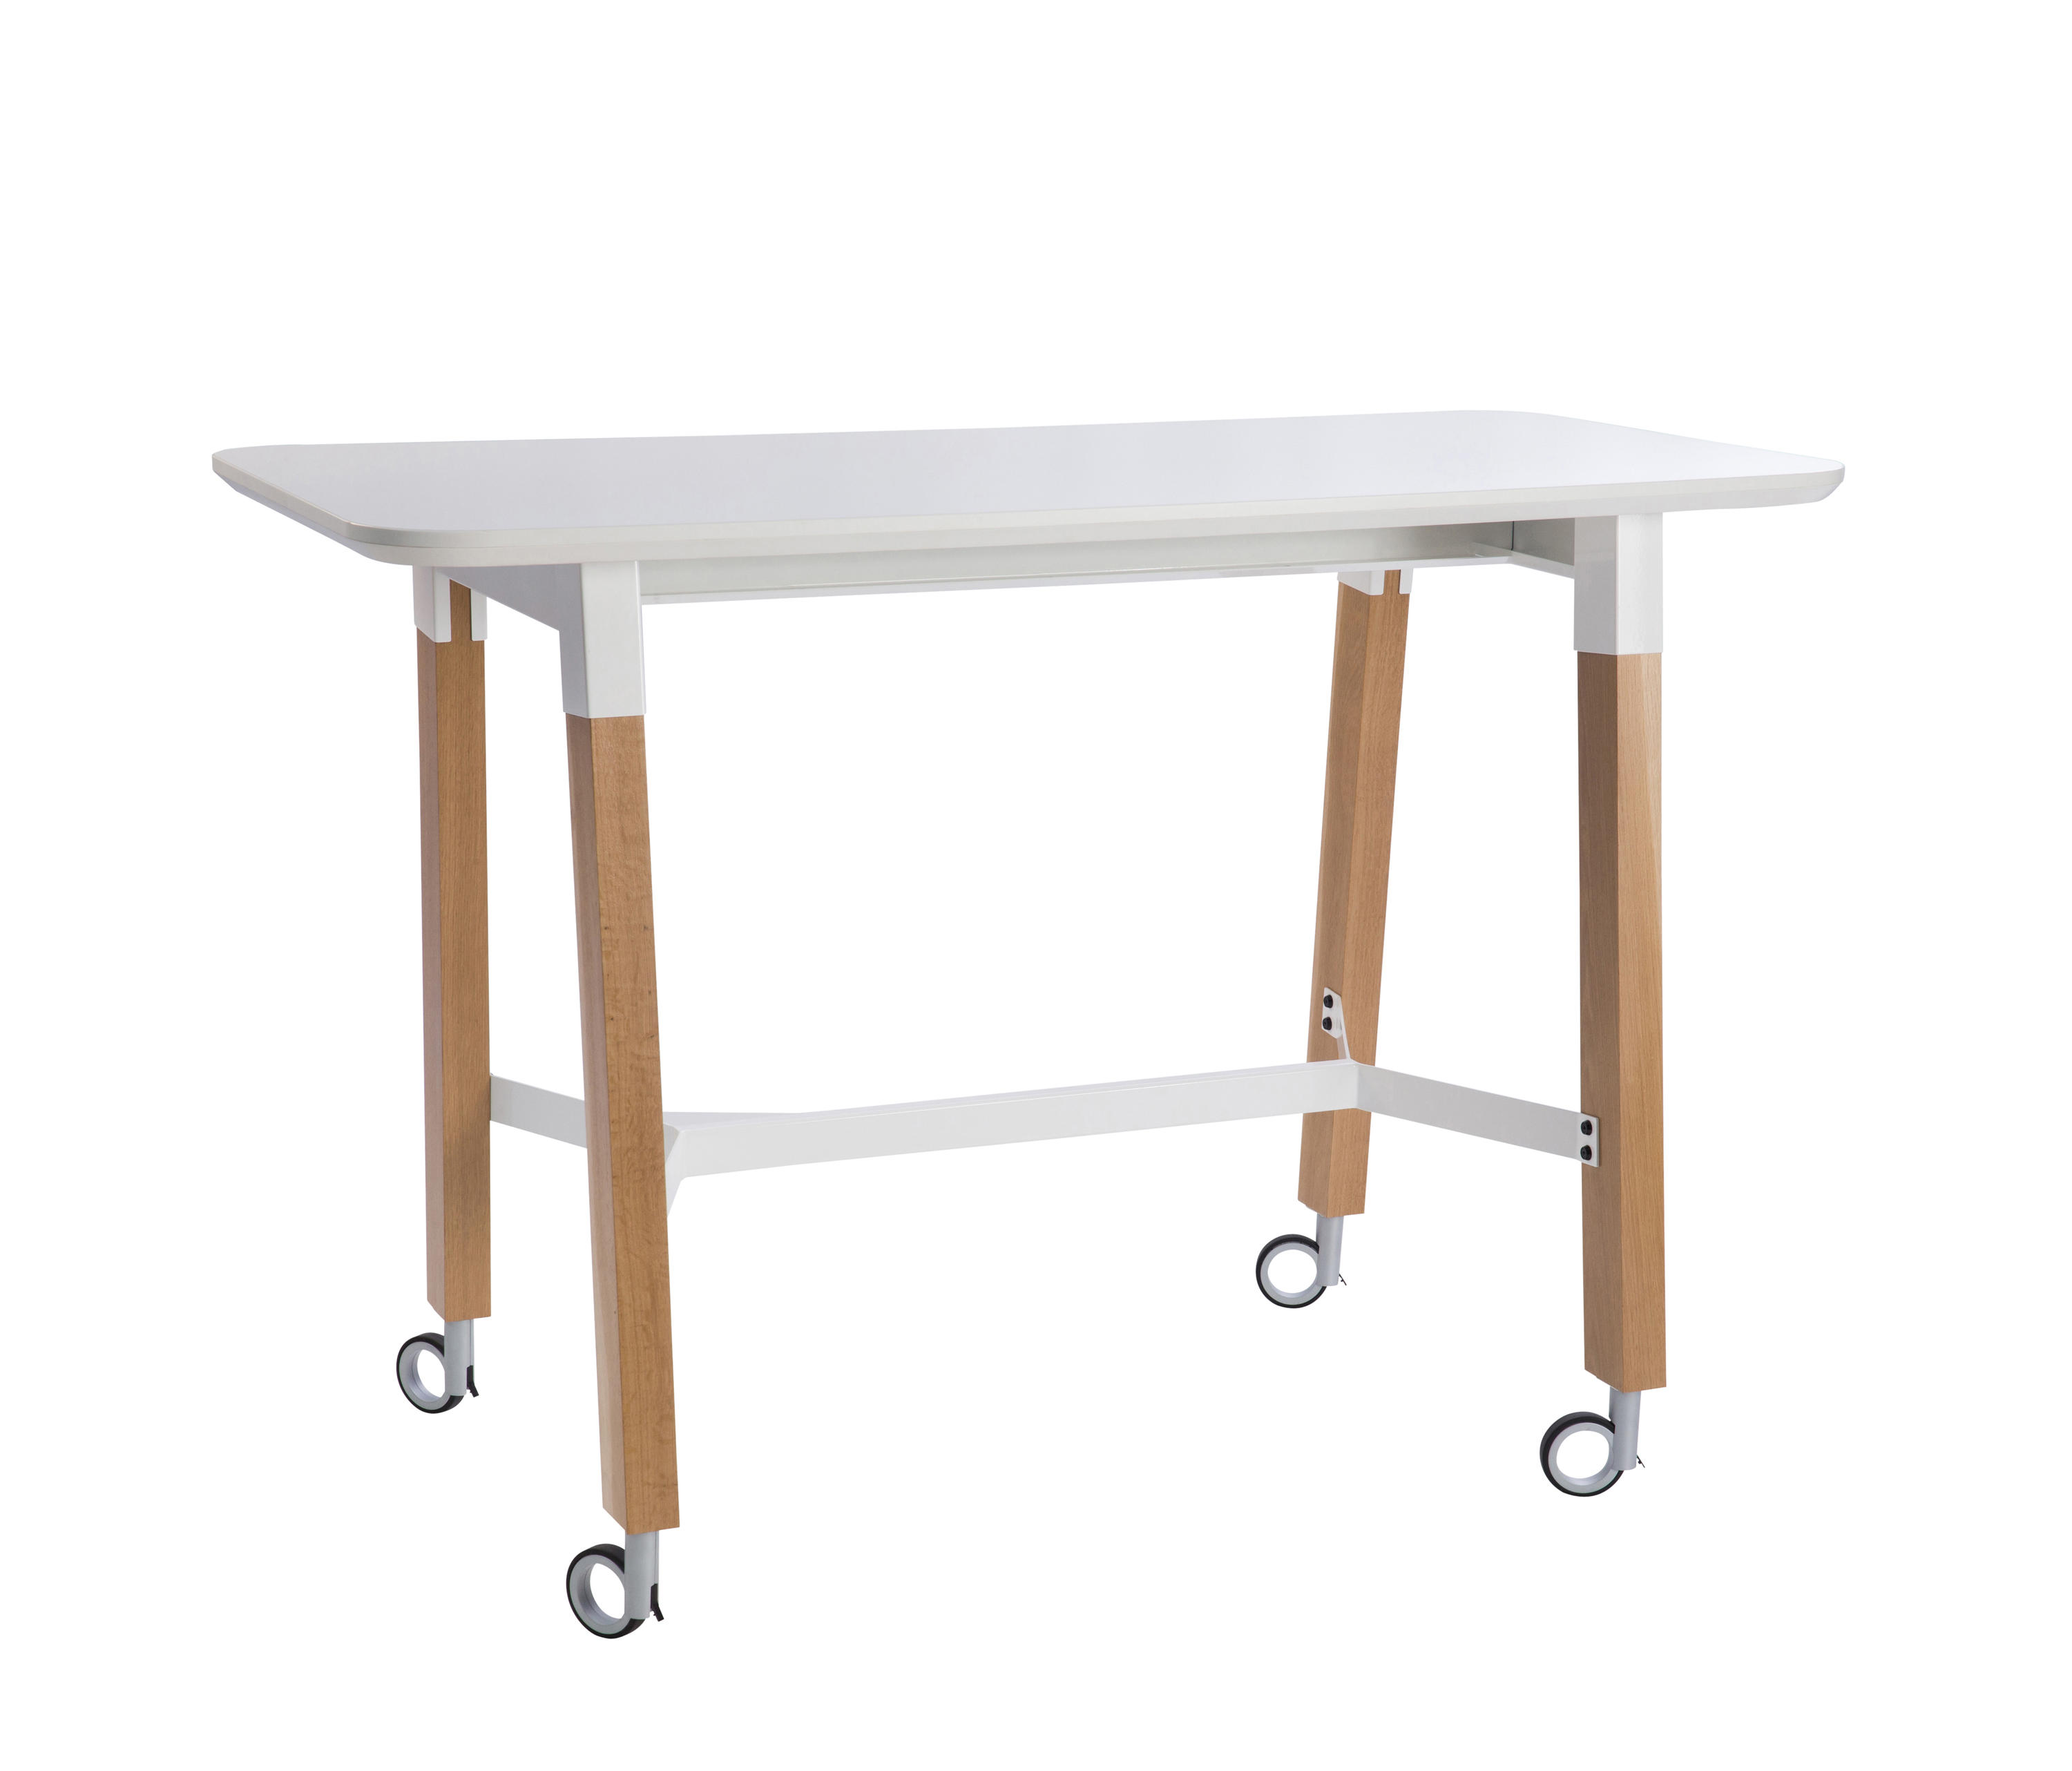 SLAB STANDUP Standing Tables From Luxxbox Architonic - Stand up meeting table